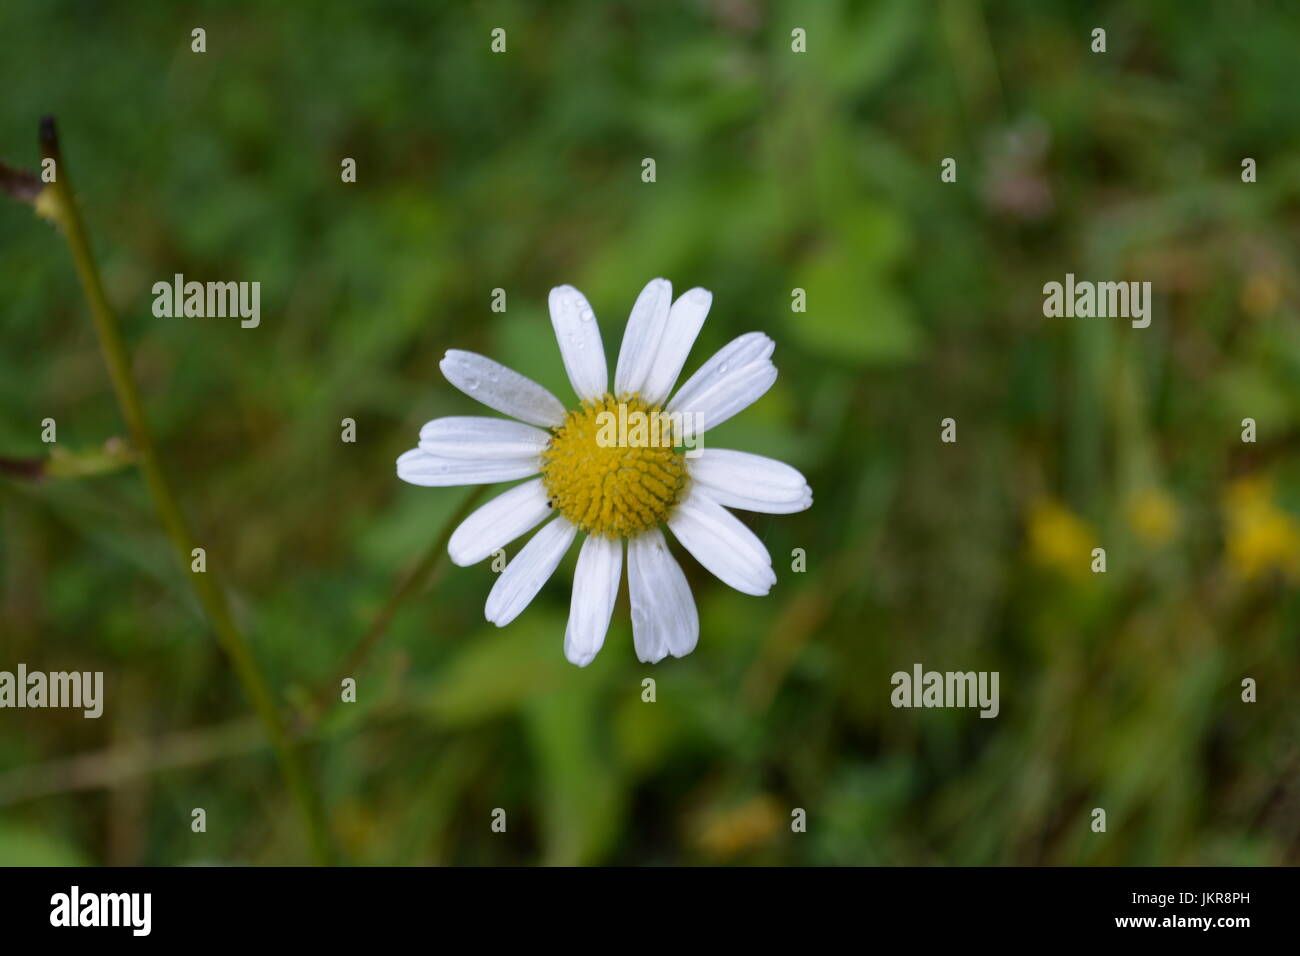 Close up of single white flower daisy with yellow head yellowhead close up of single white flower daisy with yellow head yellowhead bloom asymmetrical petals representing purity innocence childhood and cleanliness mightylinksfo